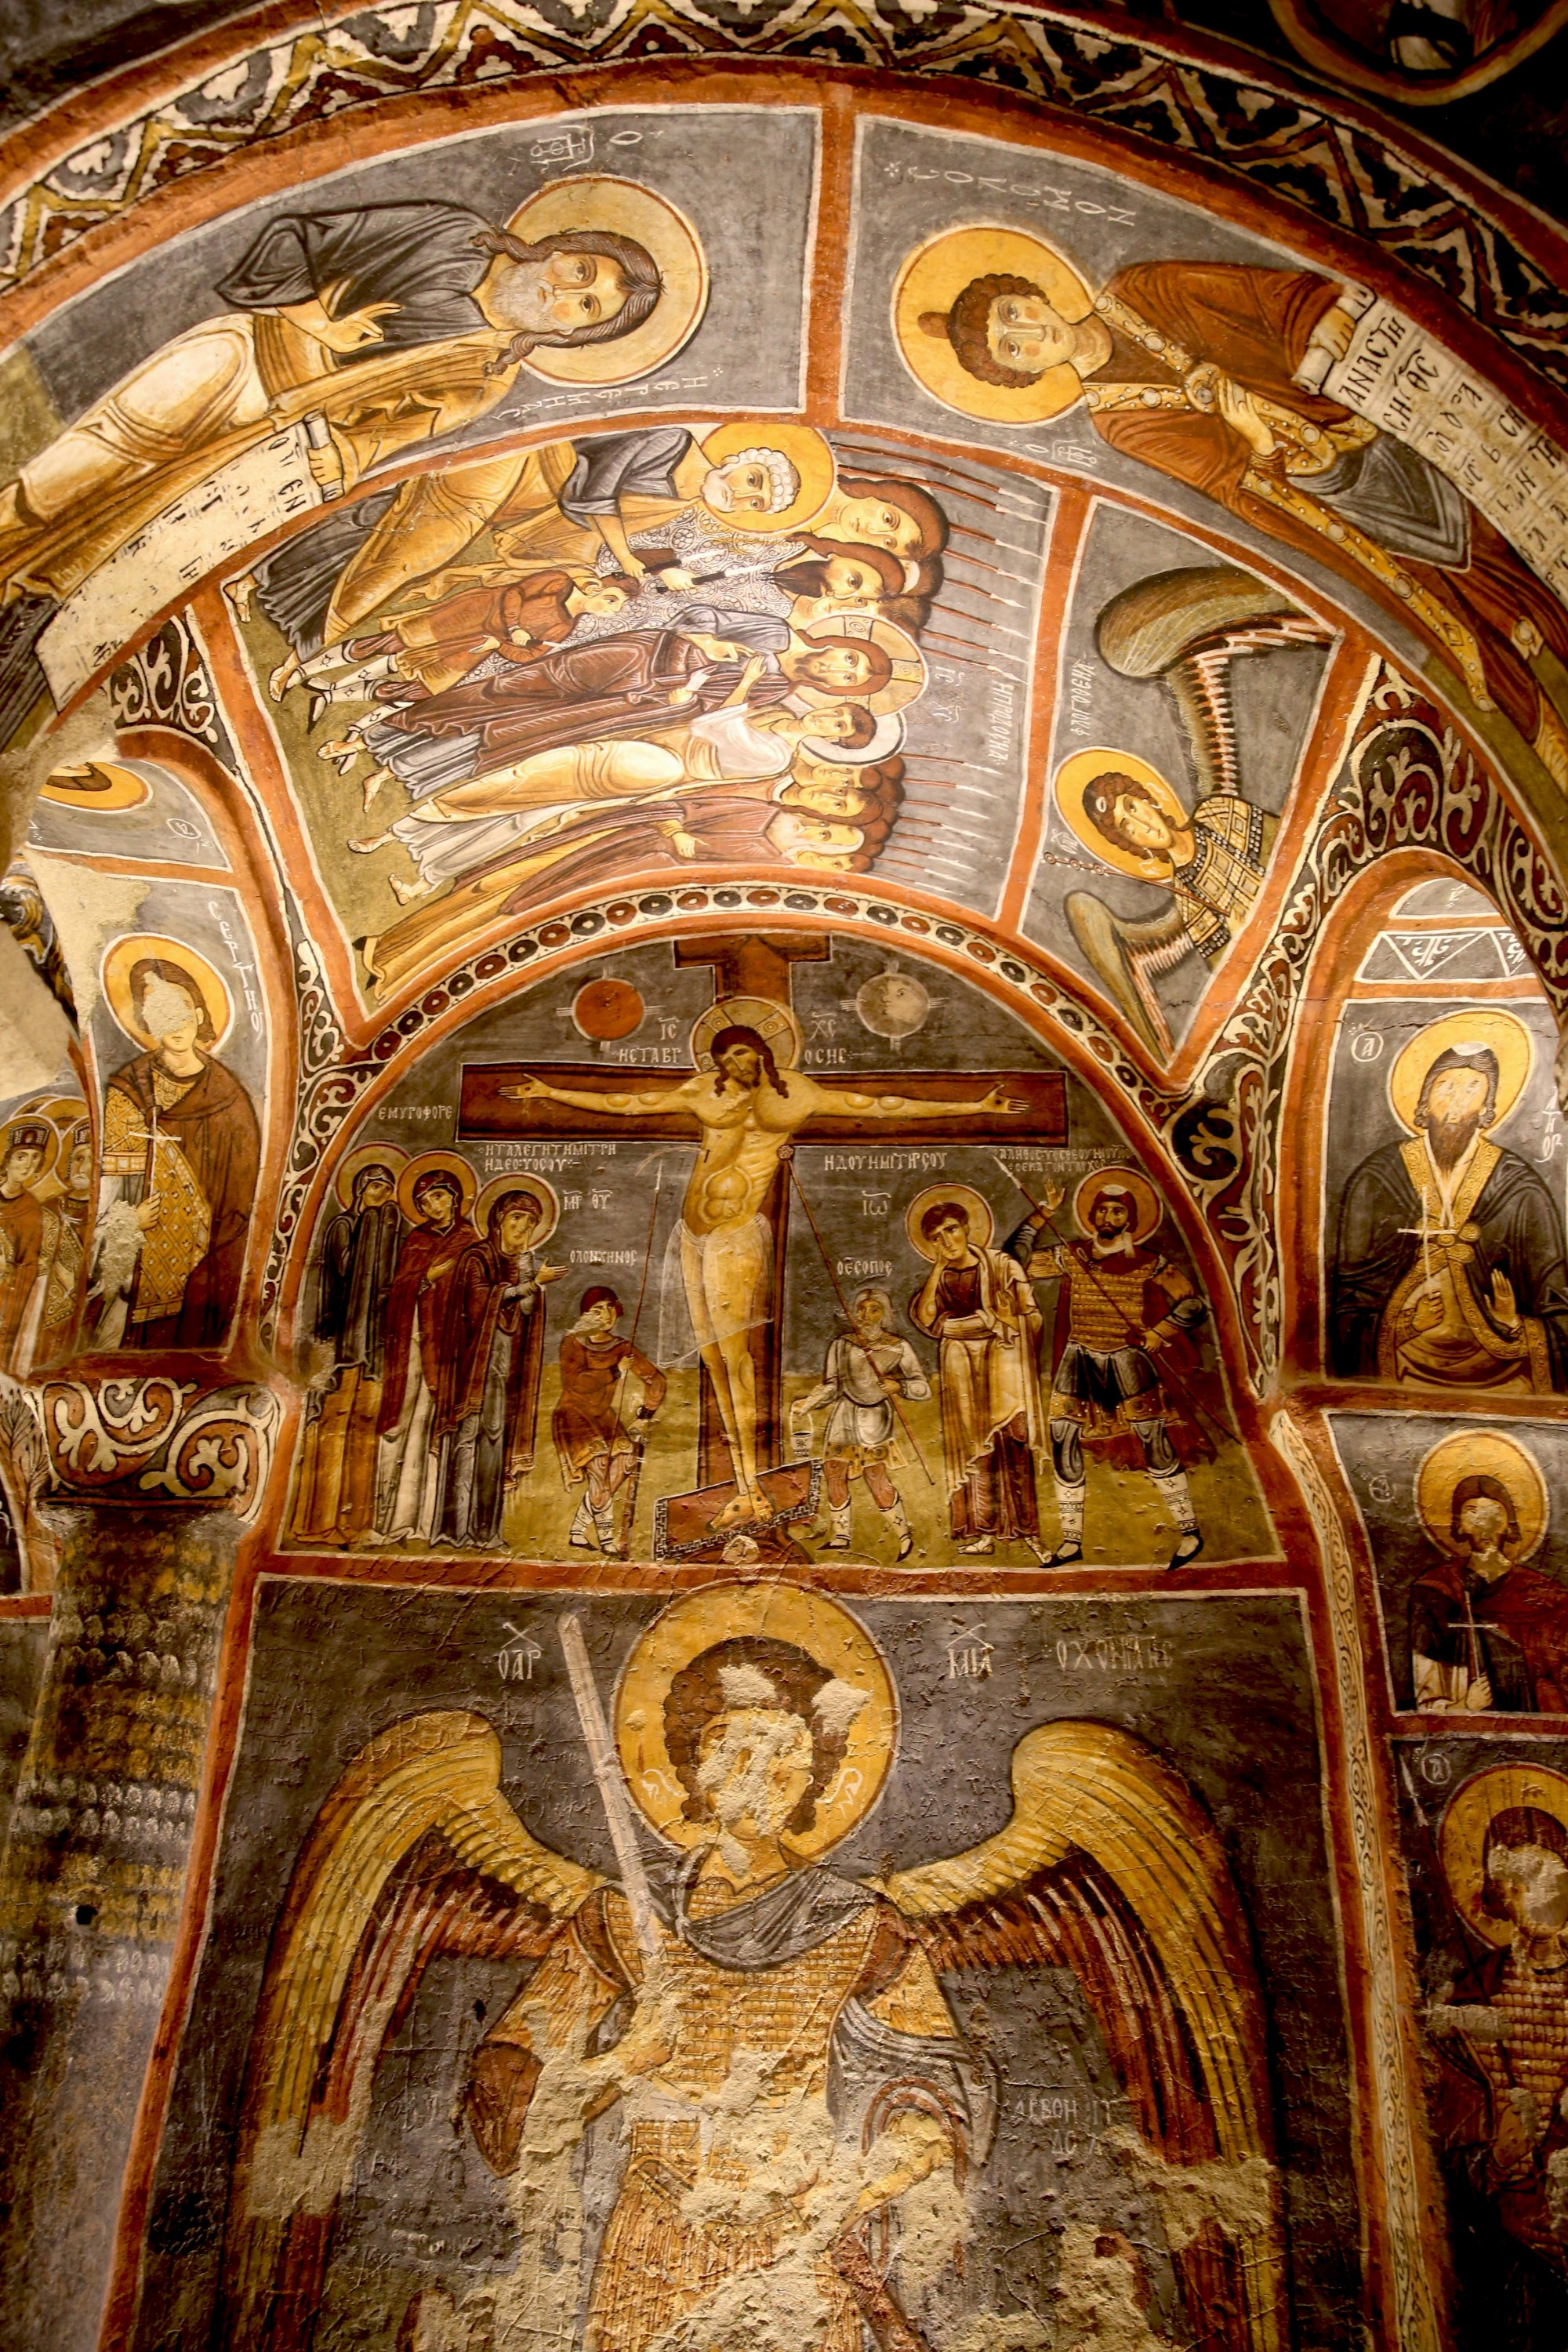 Some frescoes at the church, Cappadocia, central Turkey, Aug. 3, 2020. (AA PHOTO)